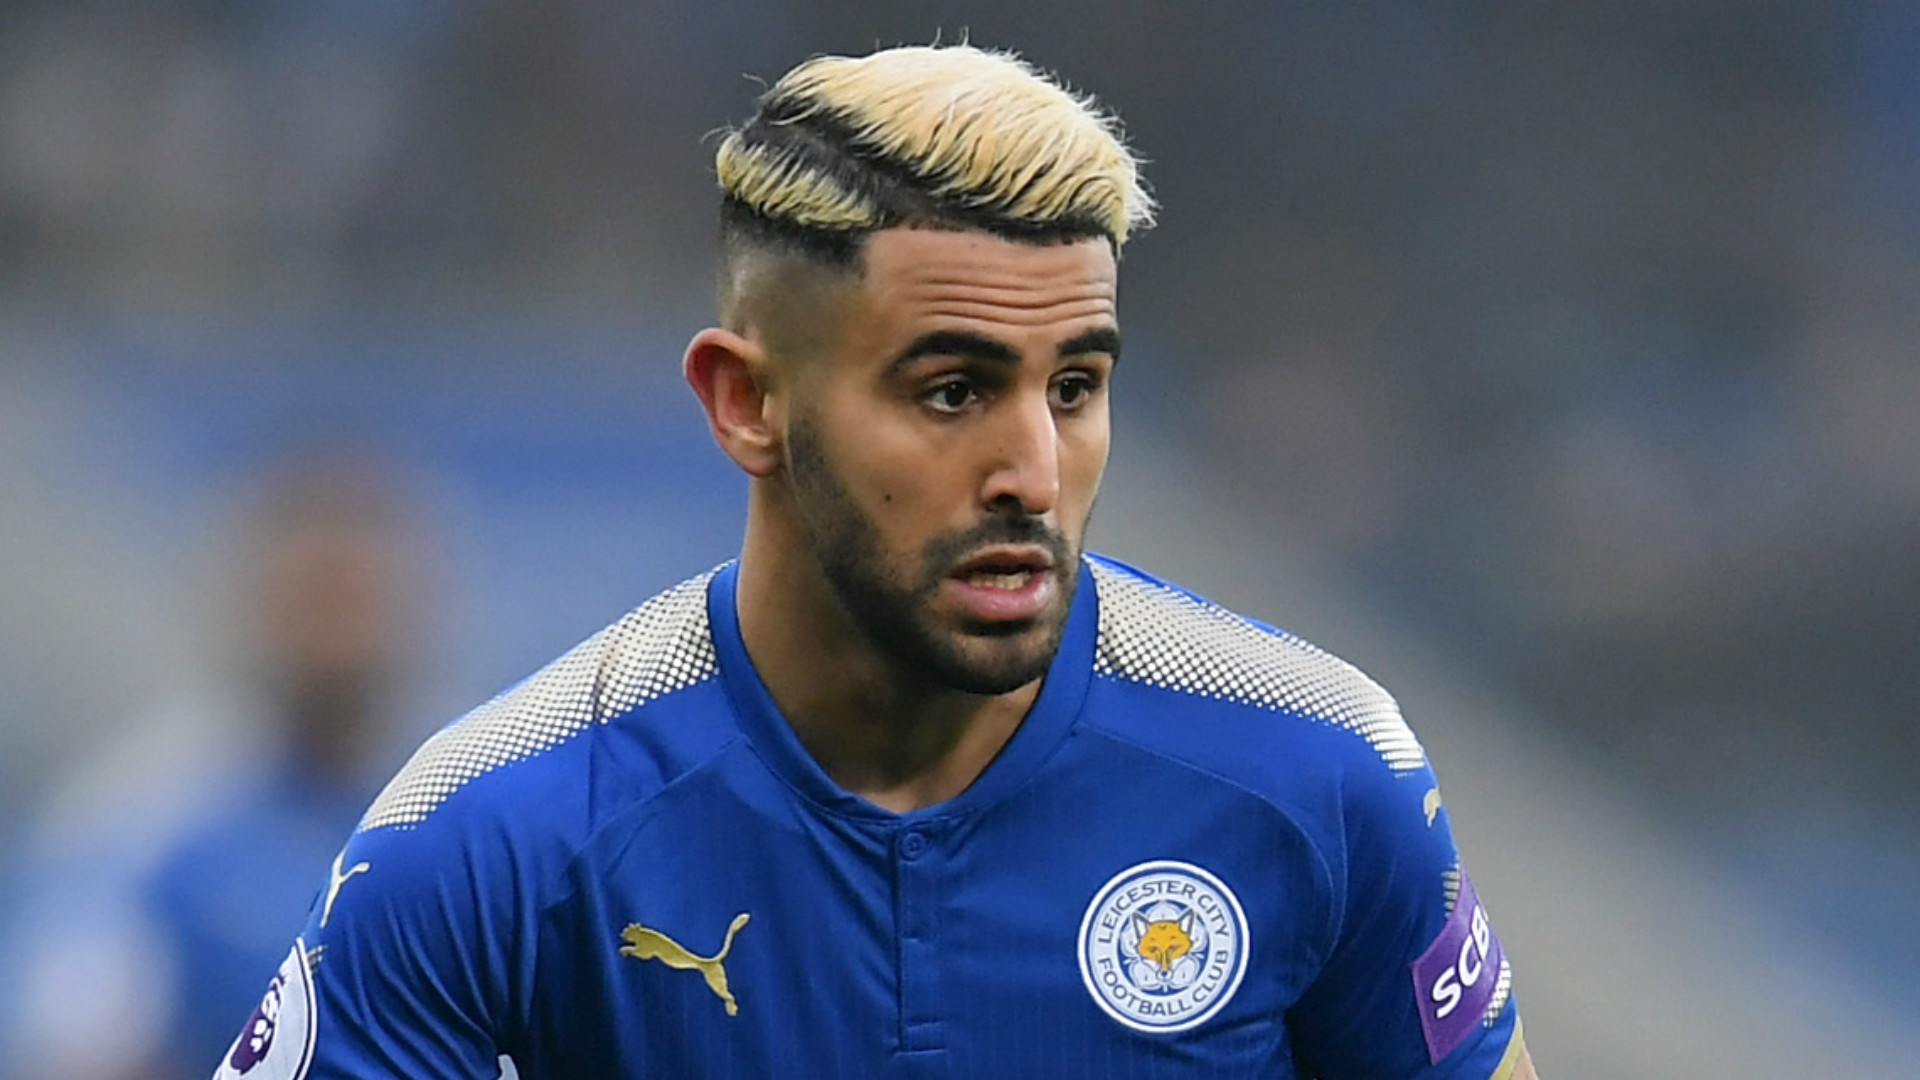 Hacked Facebook Account Source Of Riyad Mahrez Retirement Statement